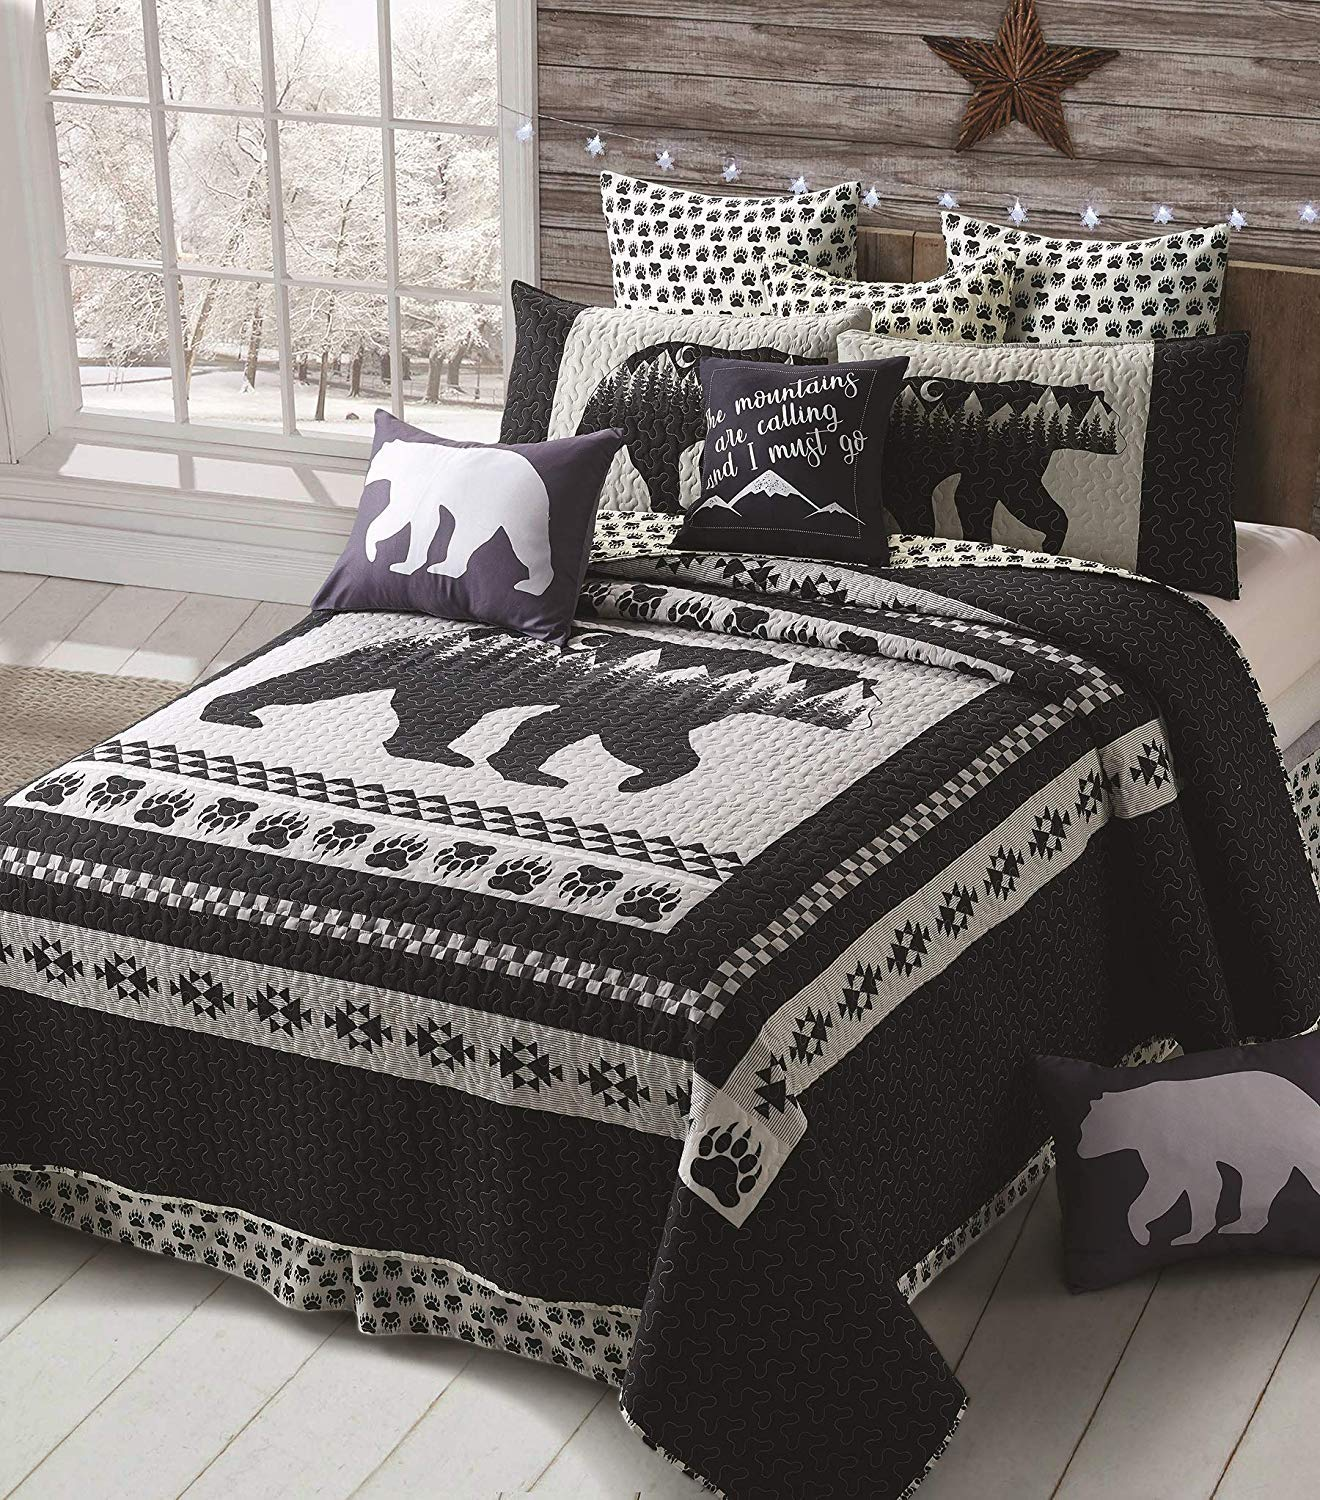 Virah Bella 3 Piece Moon Bear Quilt Set - Mountain Cabin Southwestern (Black, King